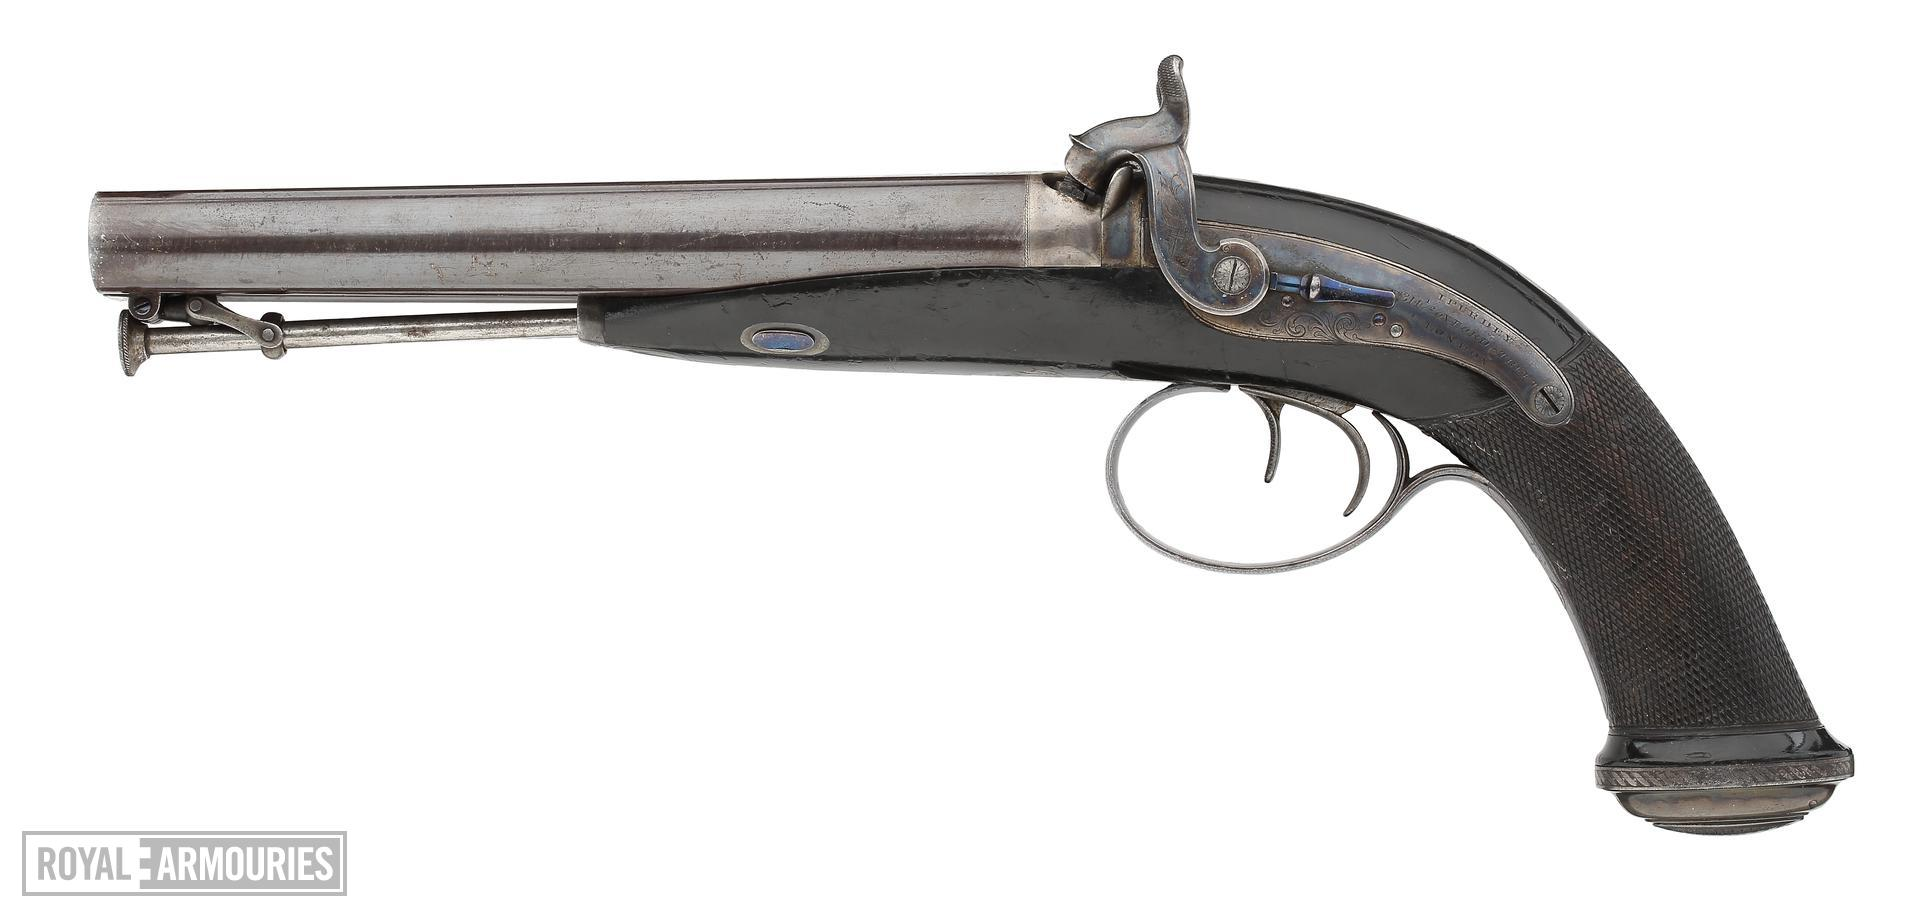 Percussion double-barrelled pistol - Howdah or holster pistol by J. Purdey One of a pair, see XII.1388.